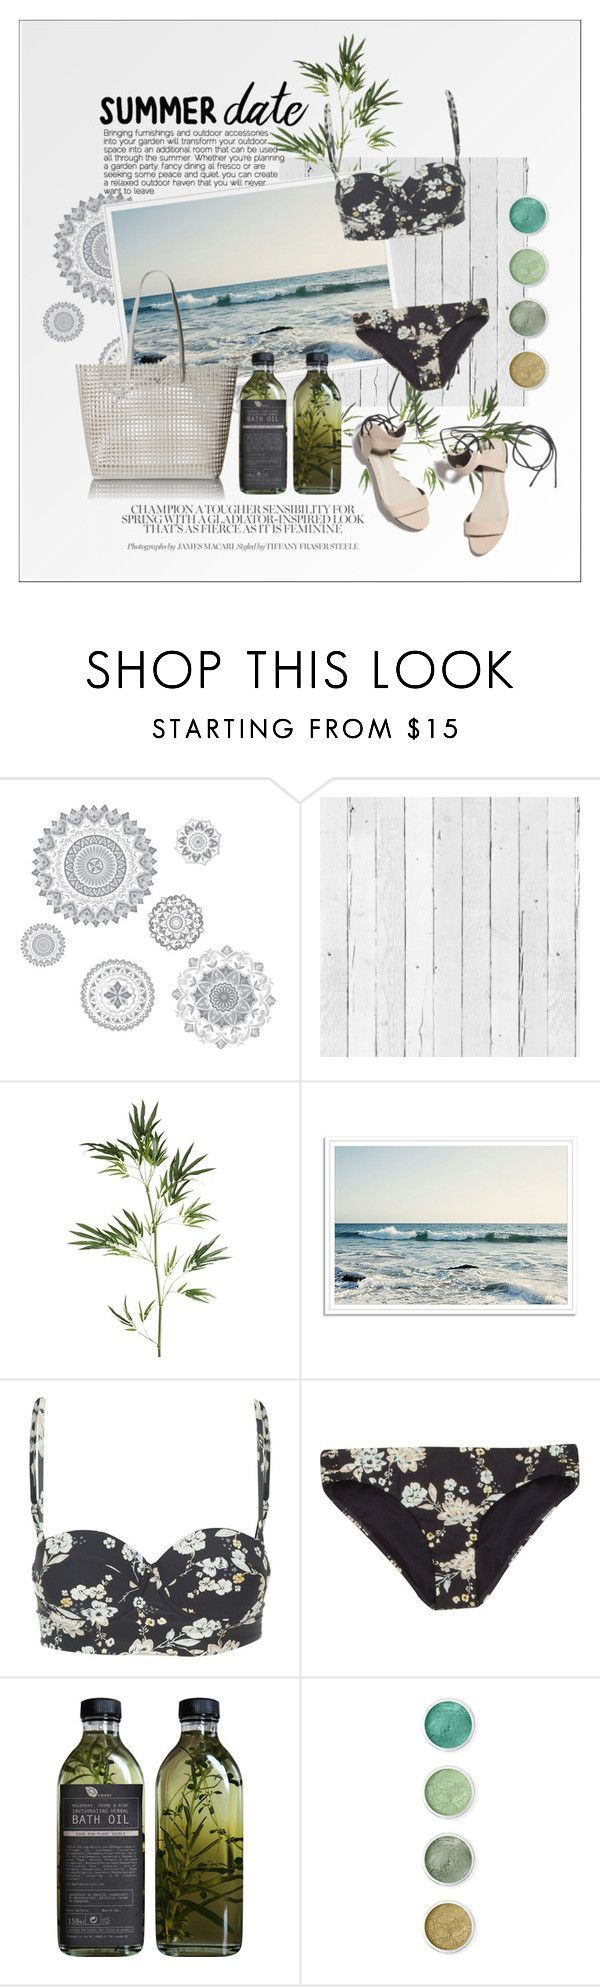 """summer date: the beach"" by fernweeh on Polyvore featuring moda, WallPops, NLXL, Pier 1 Imports, 3.1 Phillip Lim, Billabong, AMBRE, Terre Mère, Loeffler Randall i Summer"